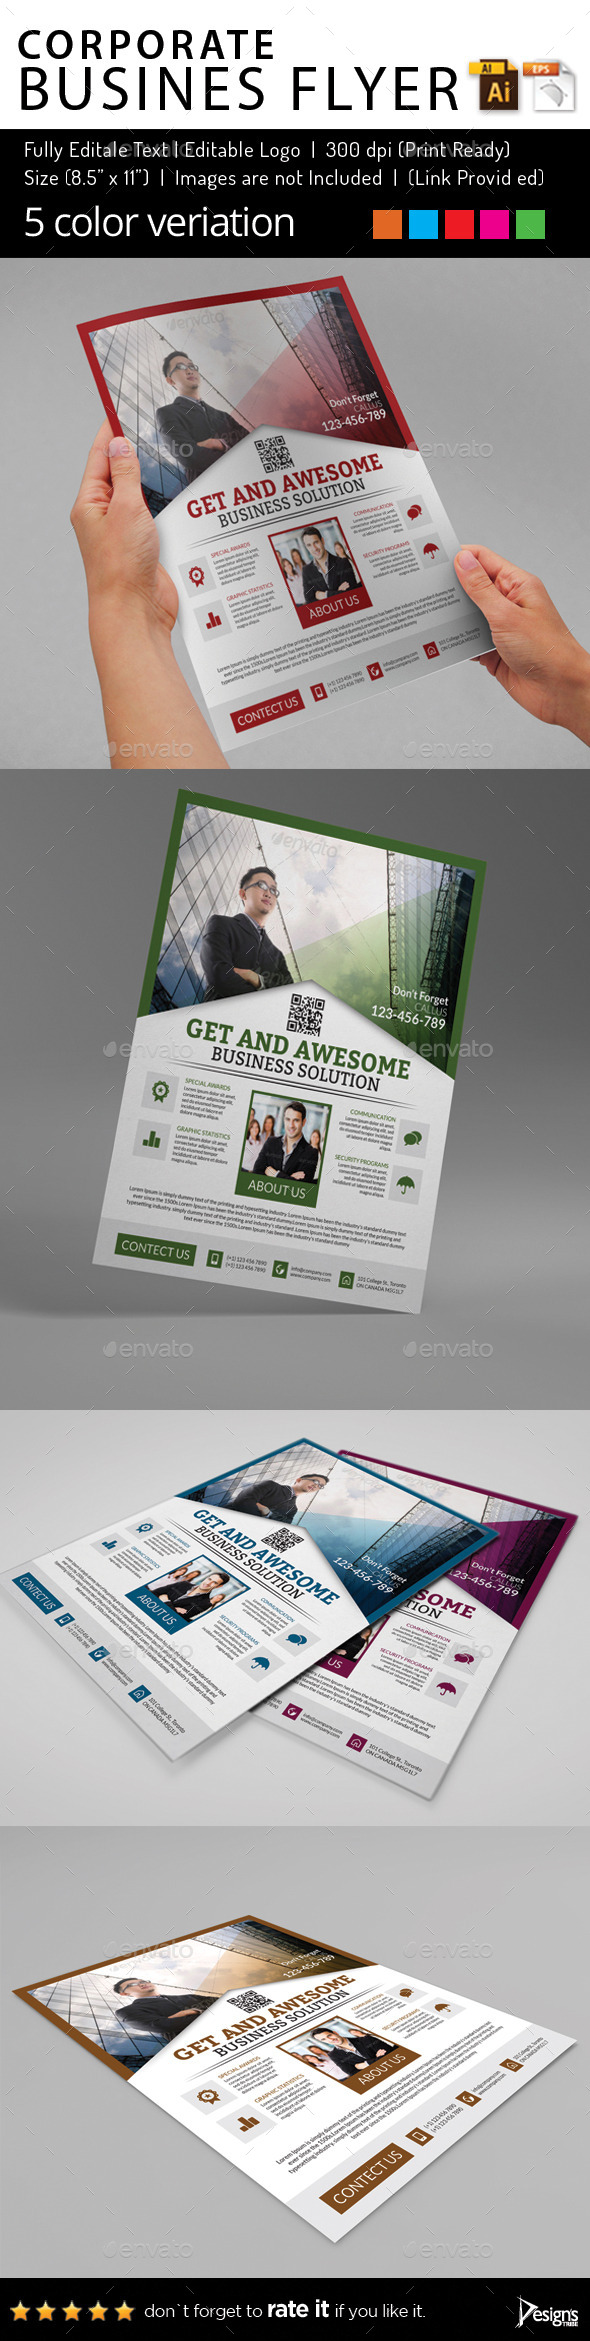 Multipurpose Business Flyer 78 - Corporate Flyers